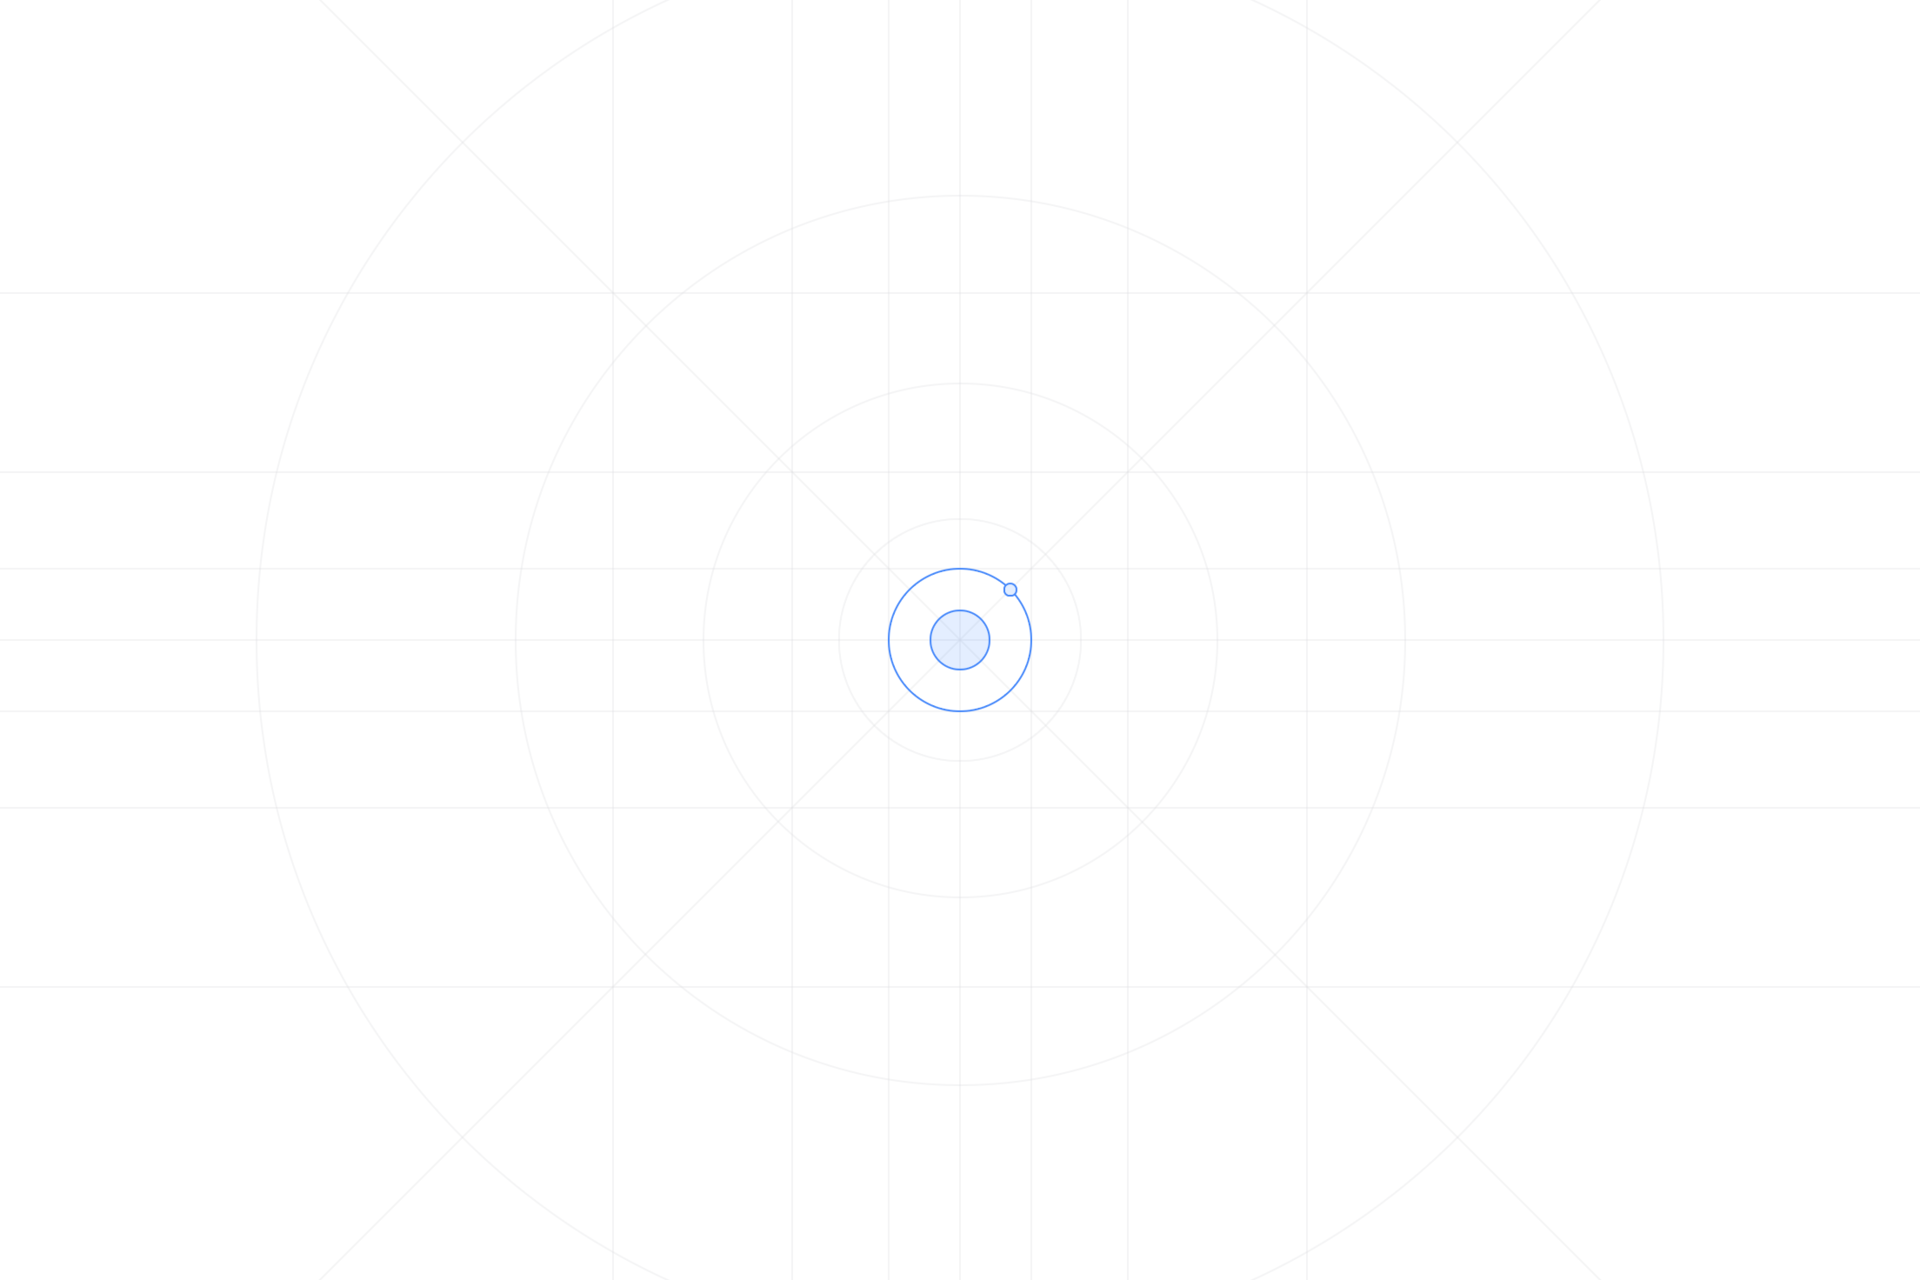 resources/android/splash/drawable-land-xxxhdpi-screen.png